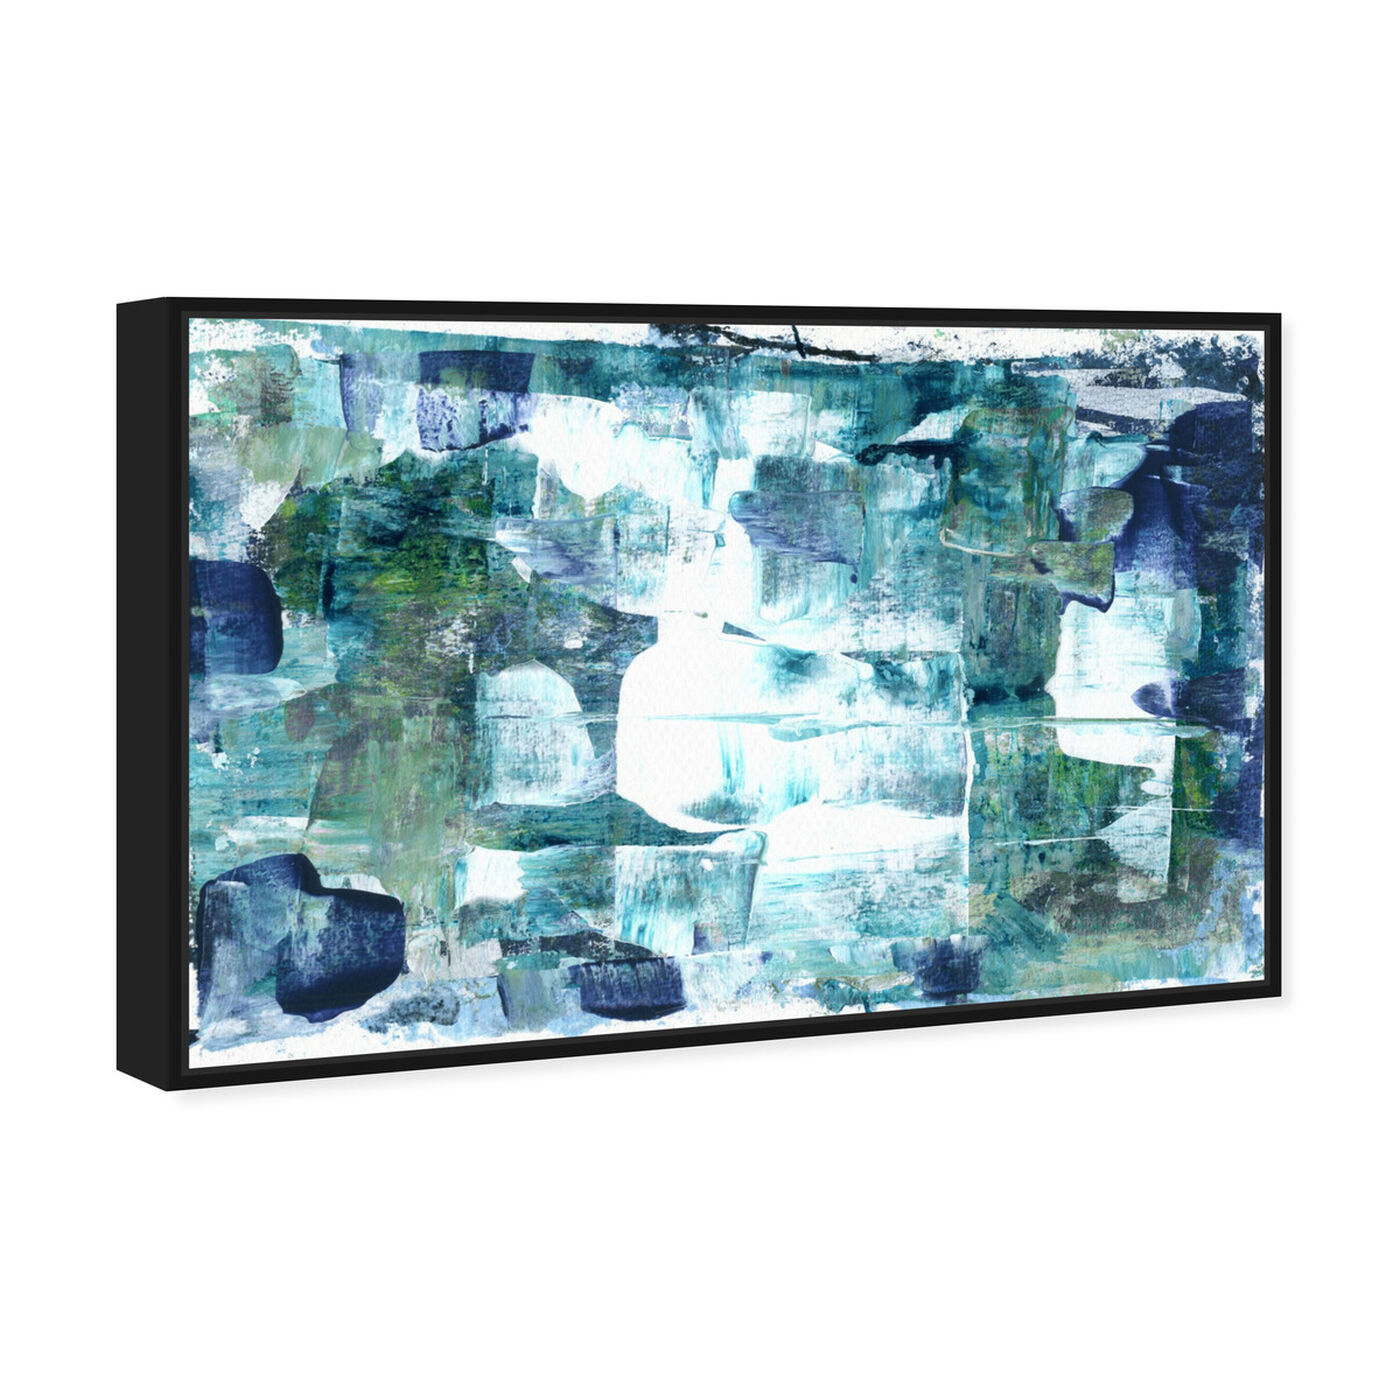 Angled view of Aquamarines - Varnish Embellishment (Matte) featuring abstract and paint art.